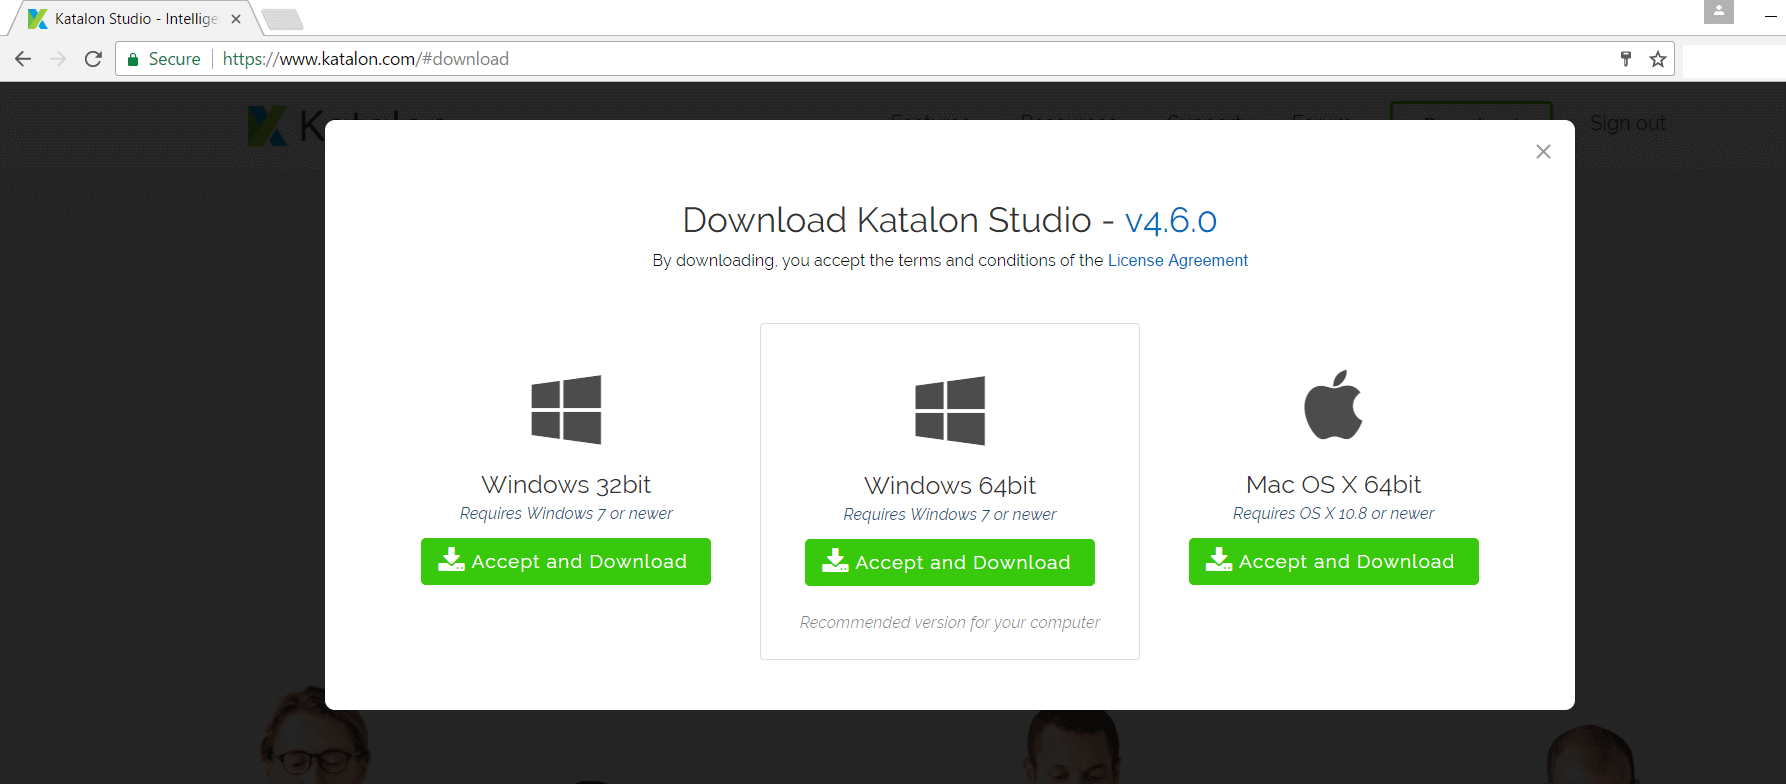 How To Download And Install Katalon Studio | Software